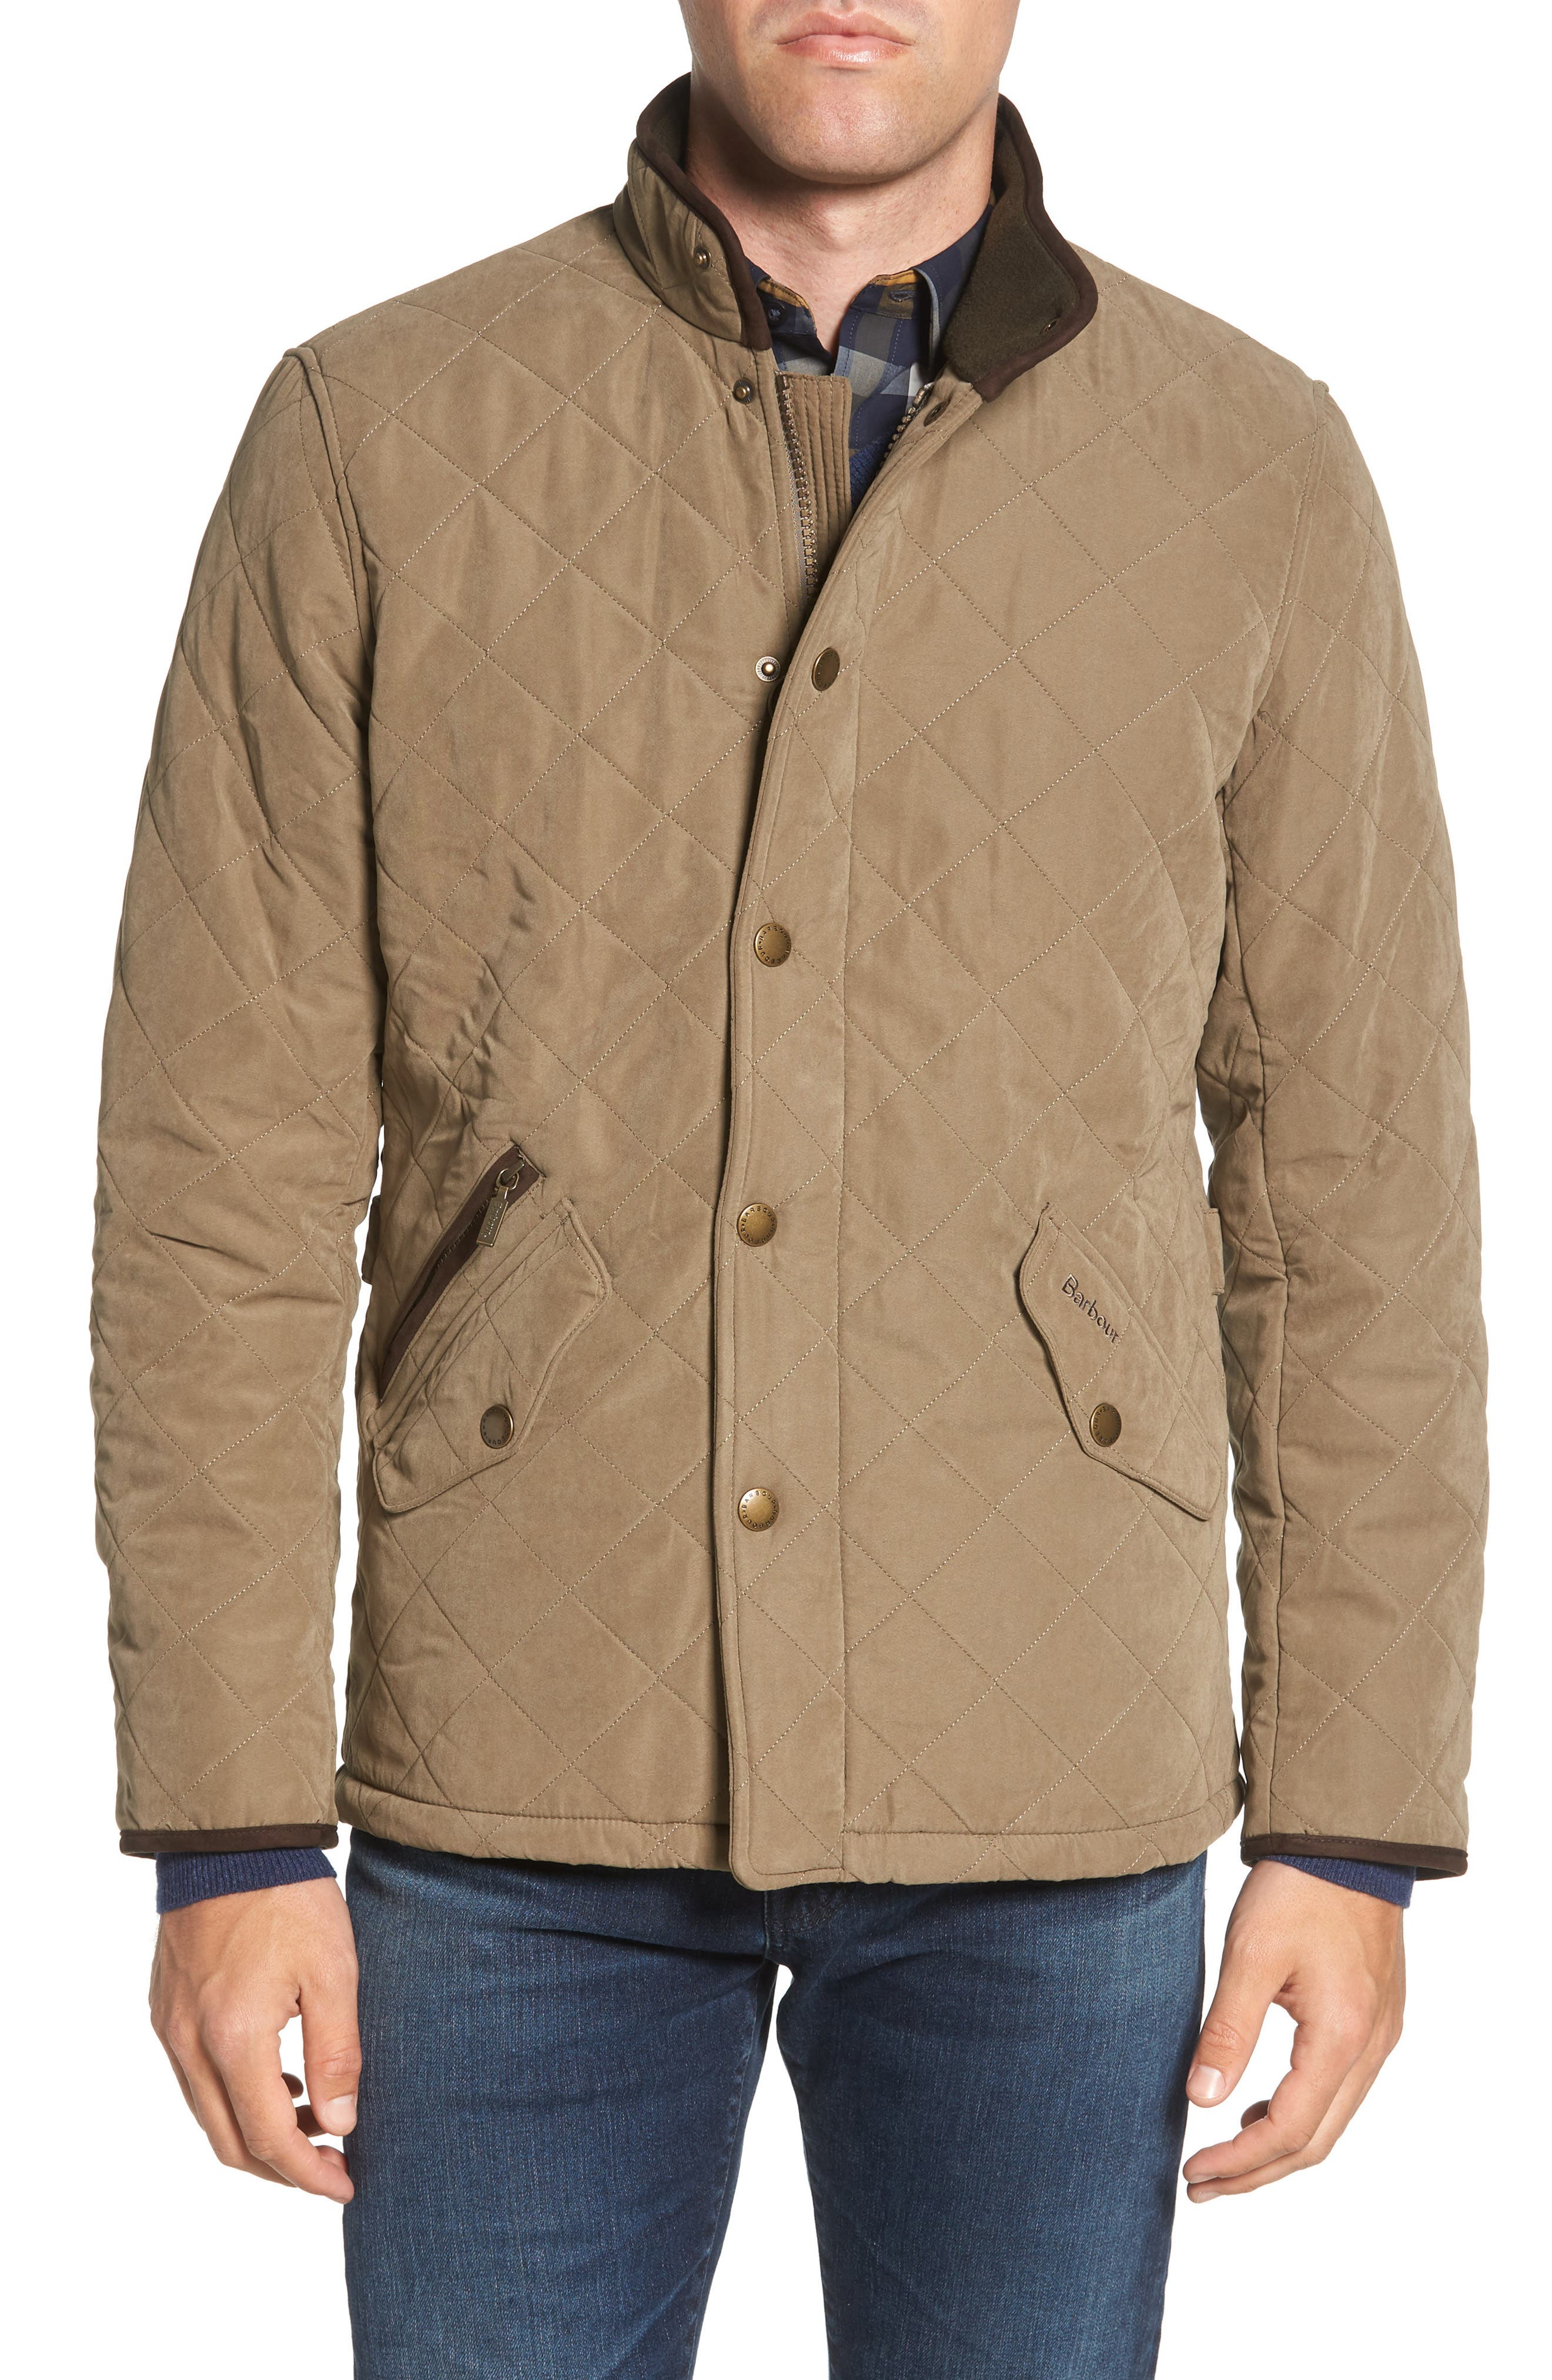 Bowden Quilted Jacket,                             Alternate thumbnail 4, color,                             LIGHT OLIVE